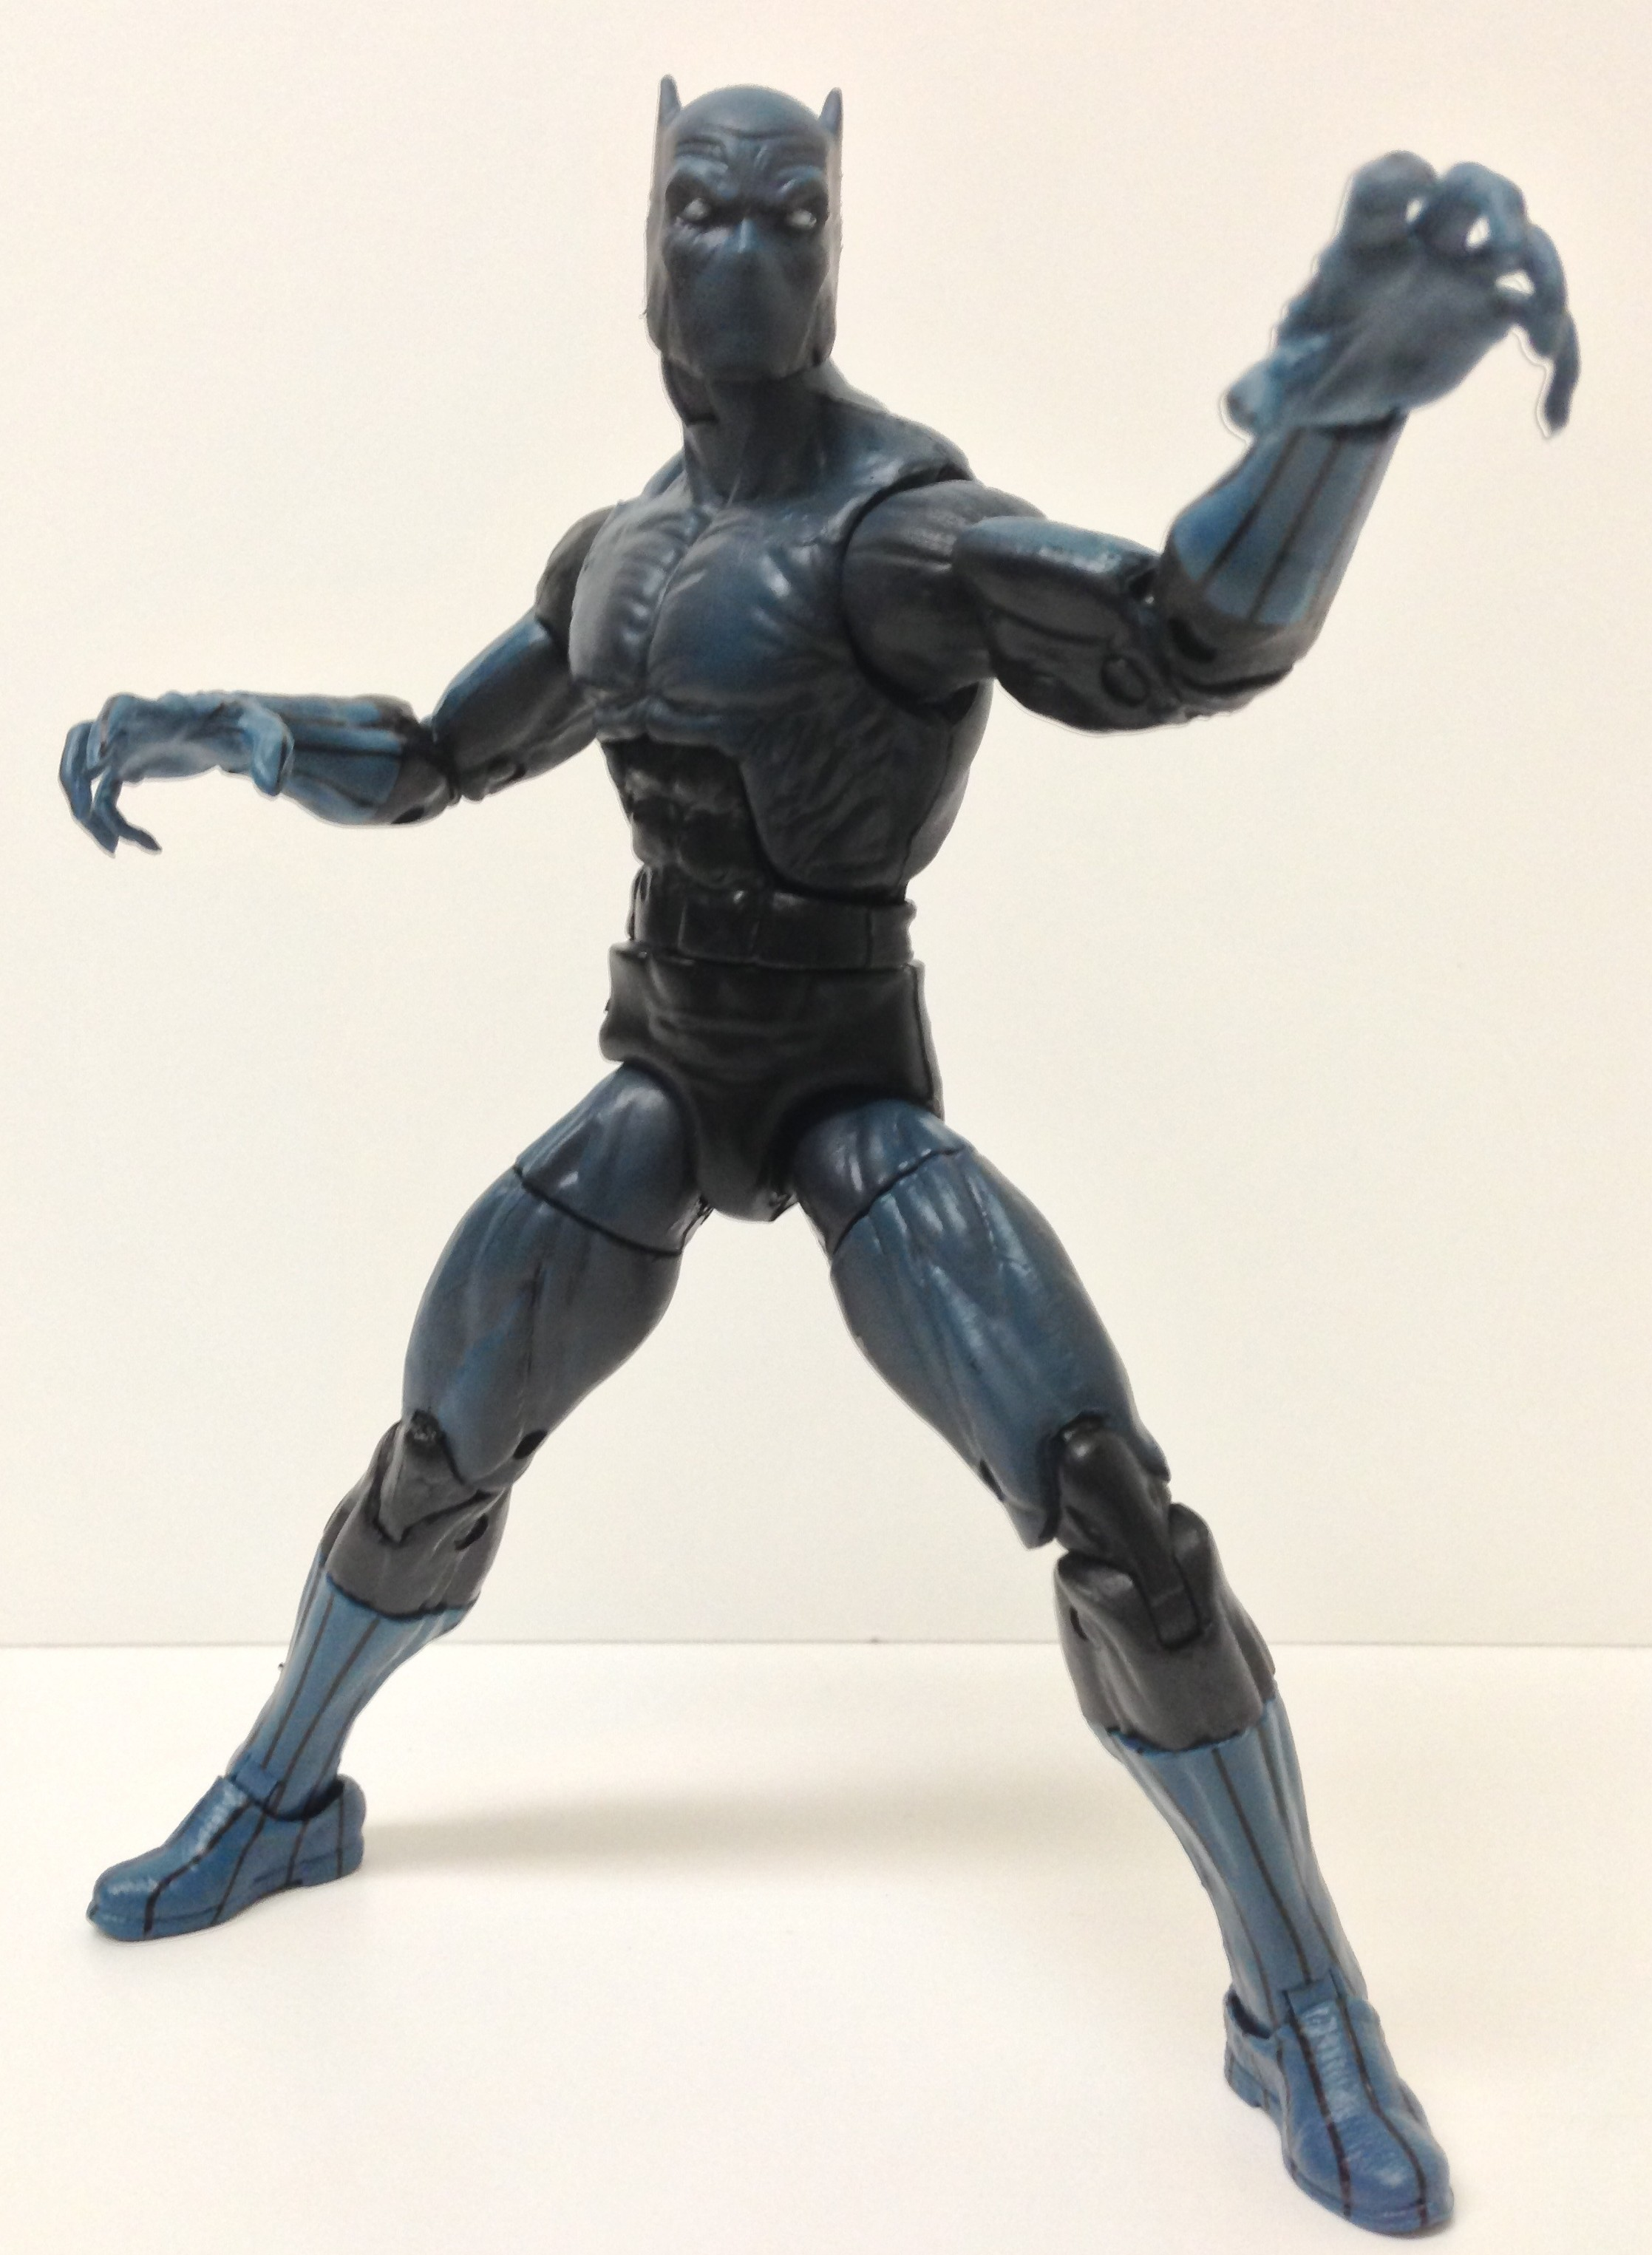 Marvel Legends Wave 5 2013 Series 2 Black Panther Figure Rocket Raccoon Series